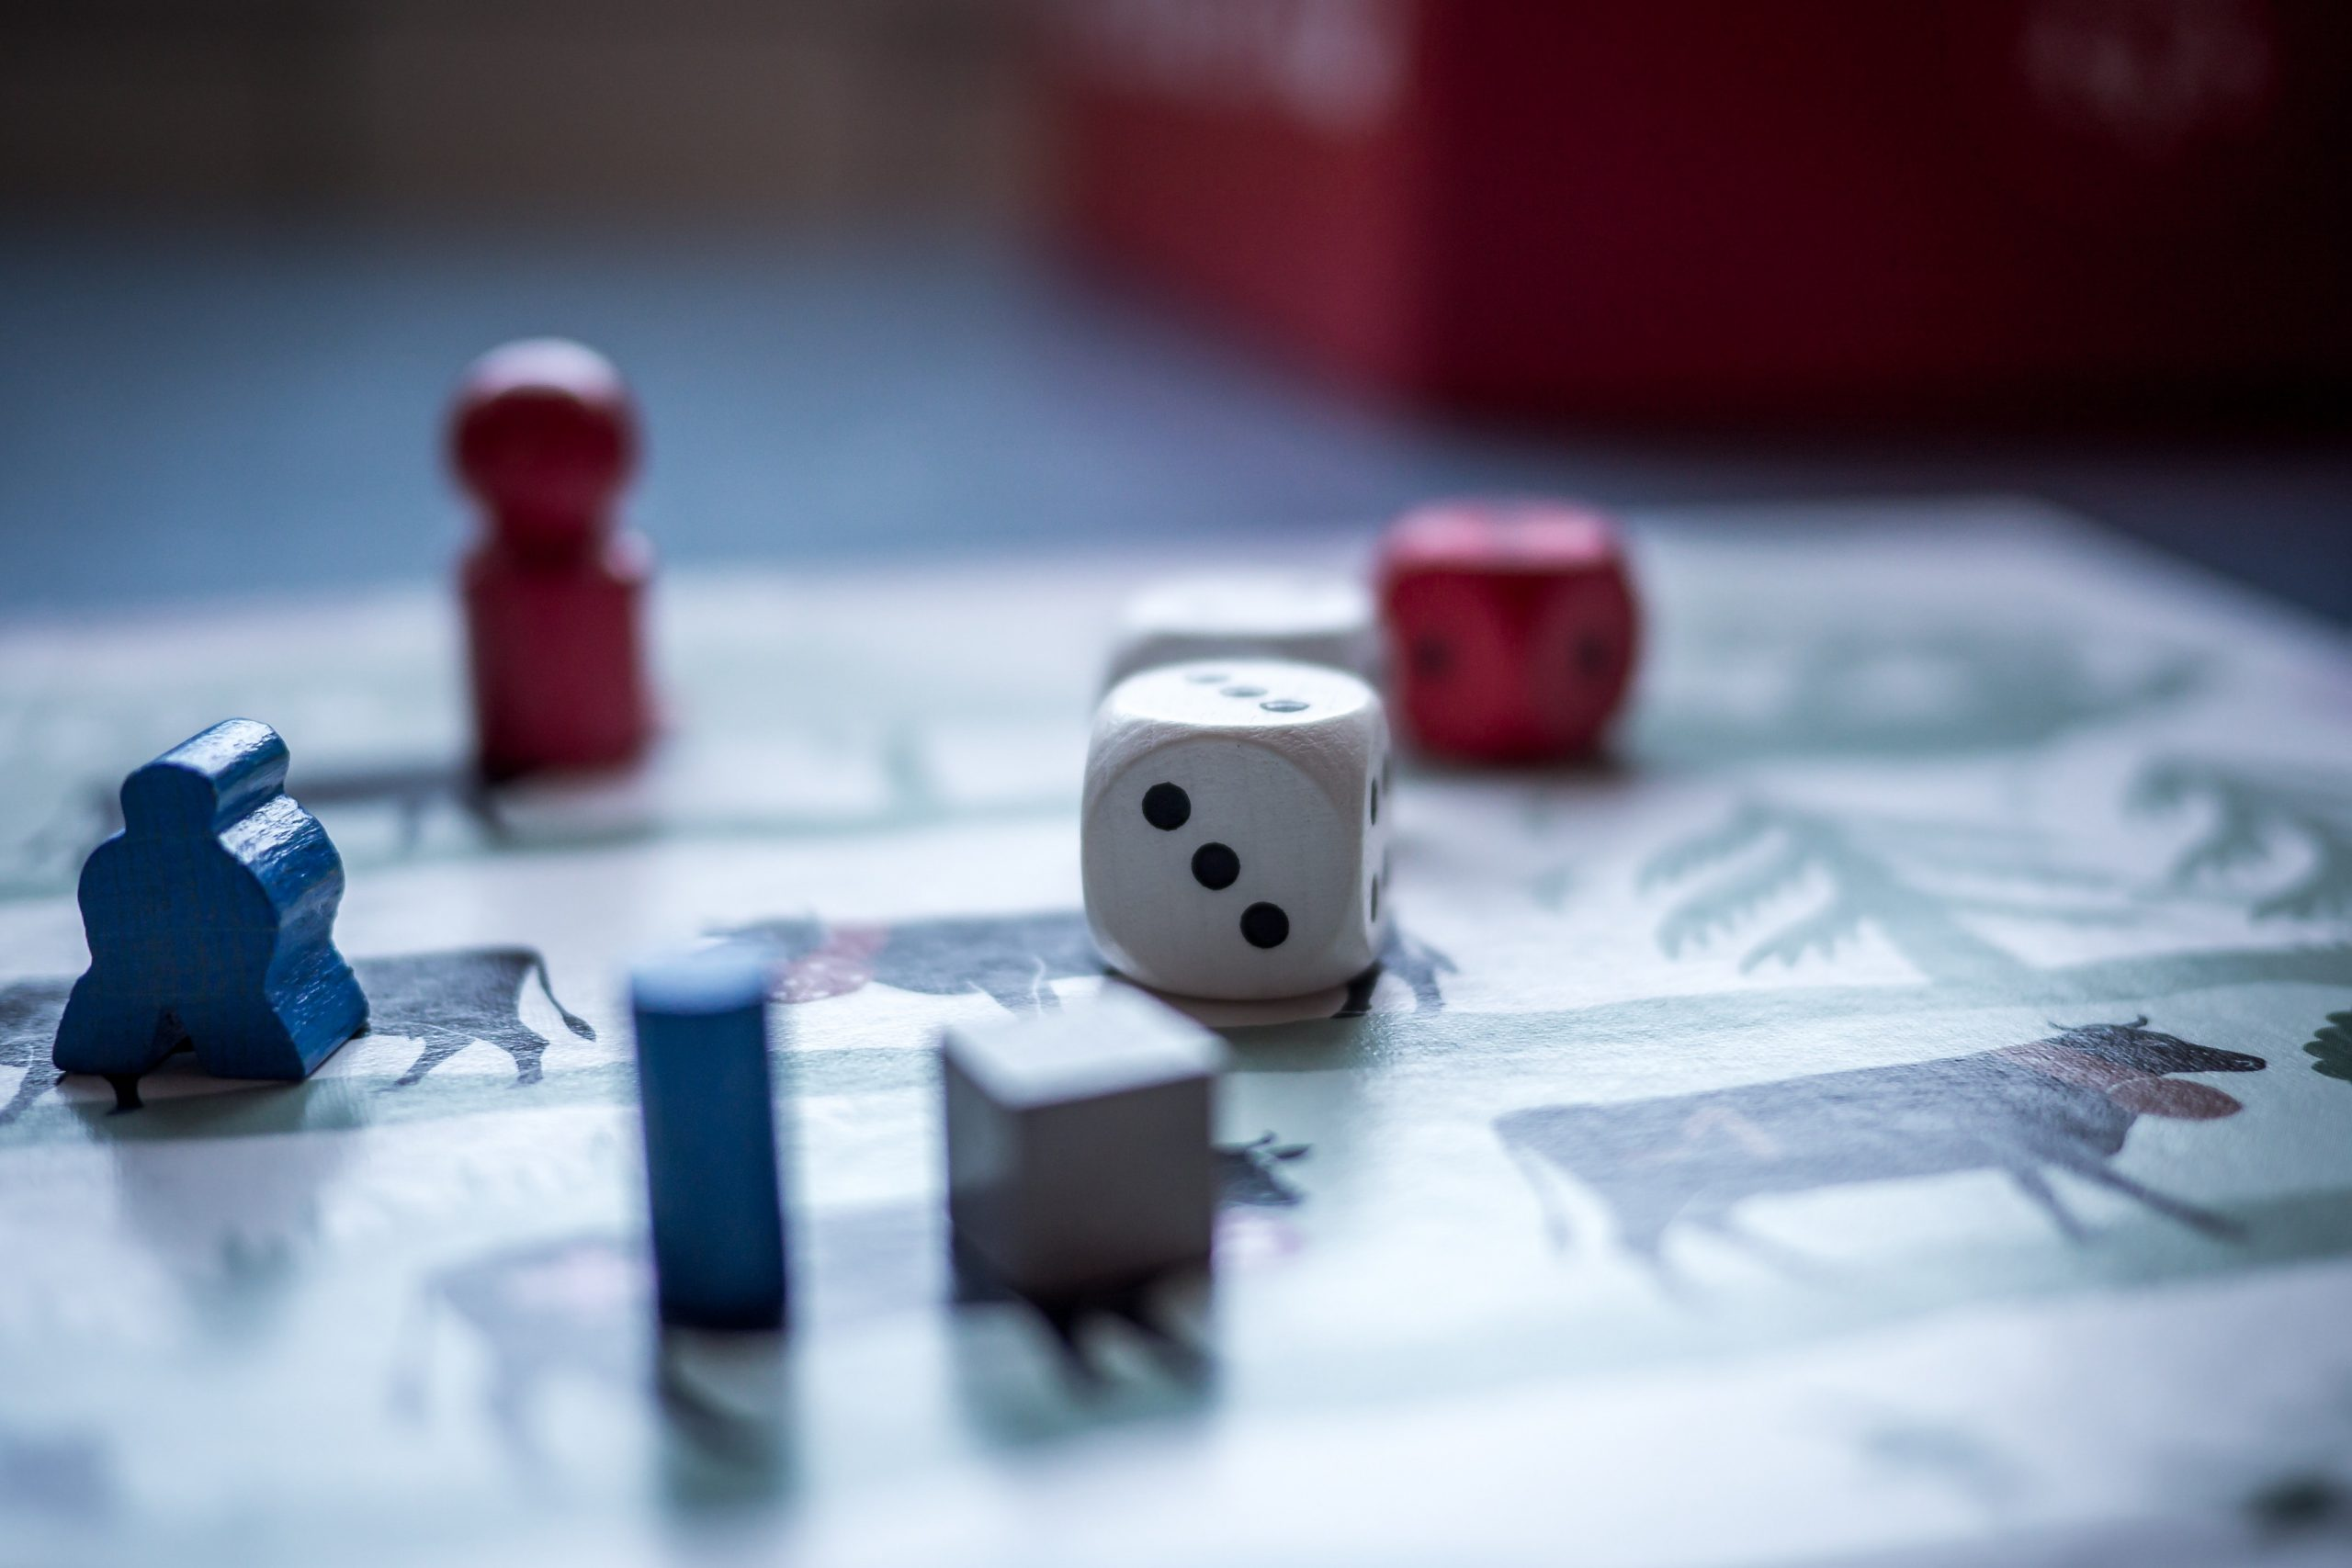 Design Strategies You Can Learn from Board Games